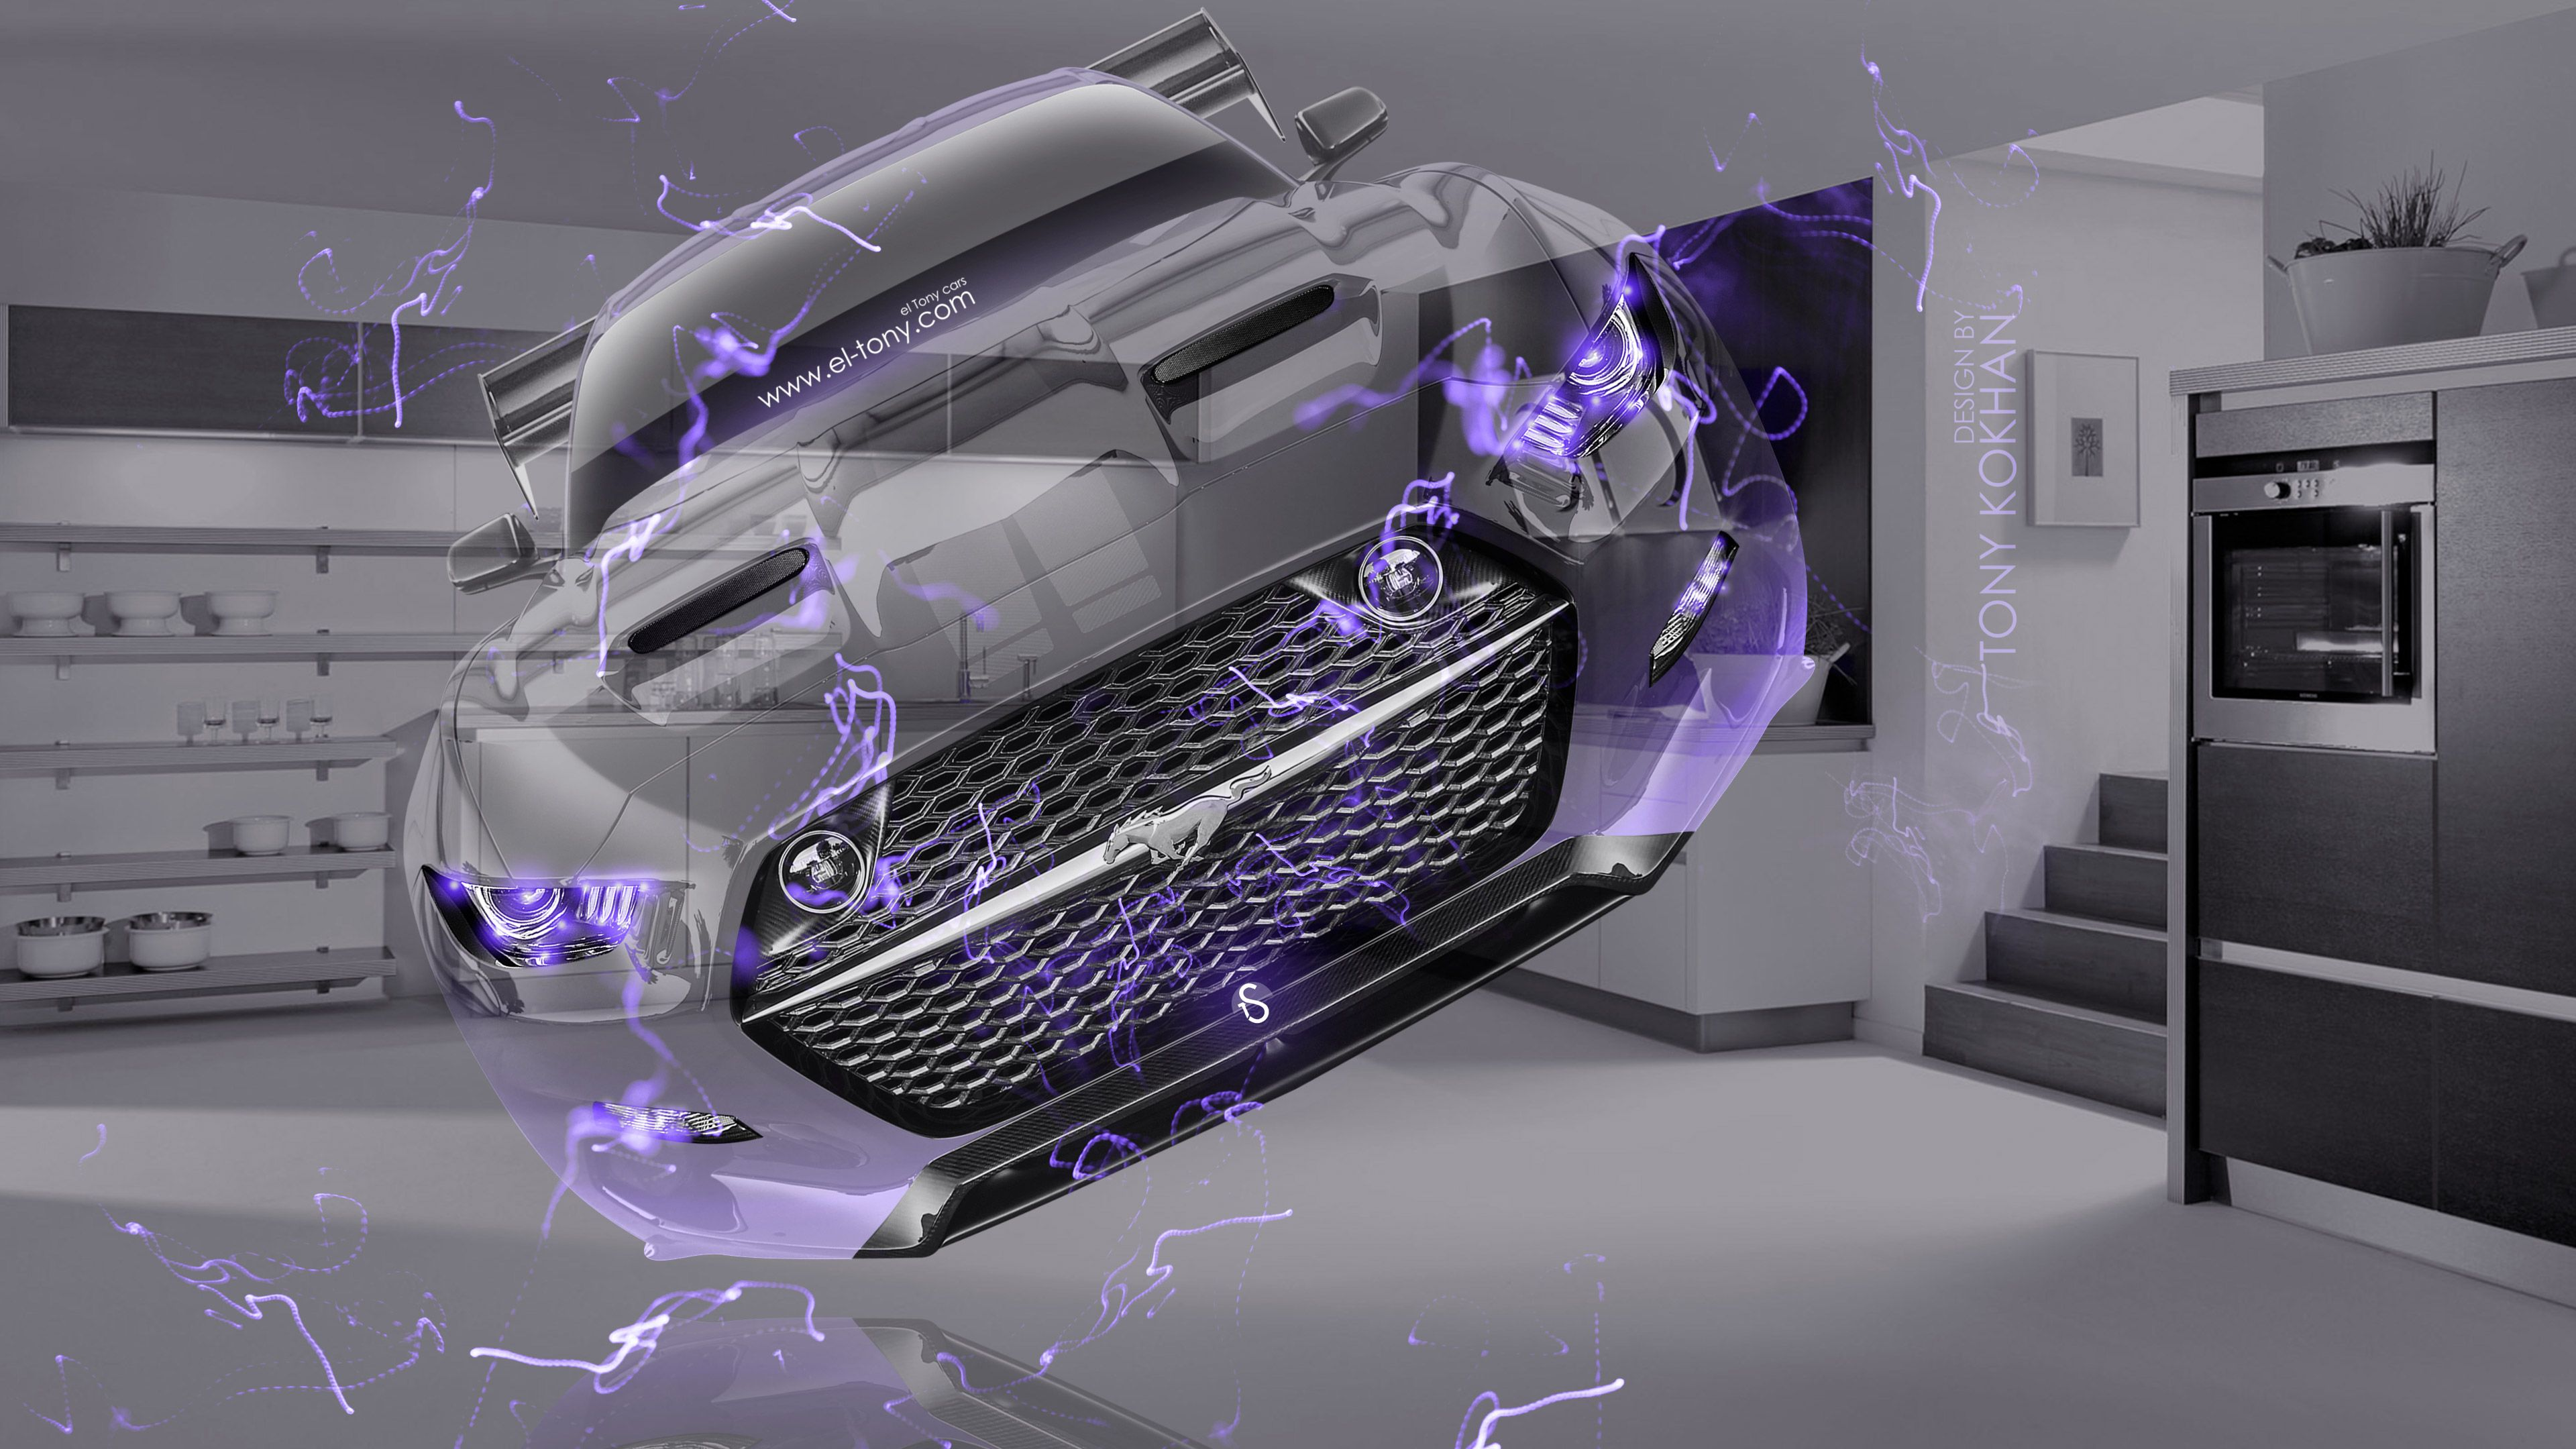 Dodge Viper SRT Front Fire Abstract Car 2014 Photoshop HD Wallpapers Design  By Tony Kokhan [